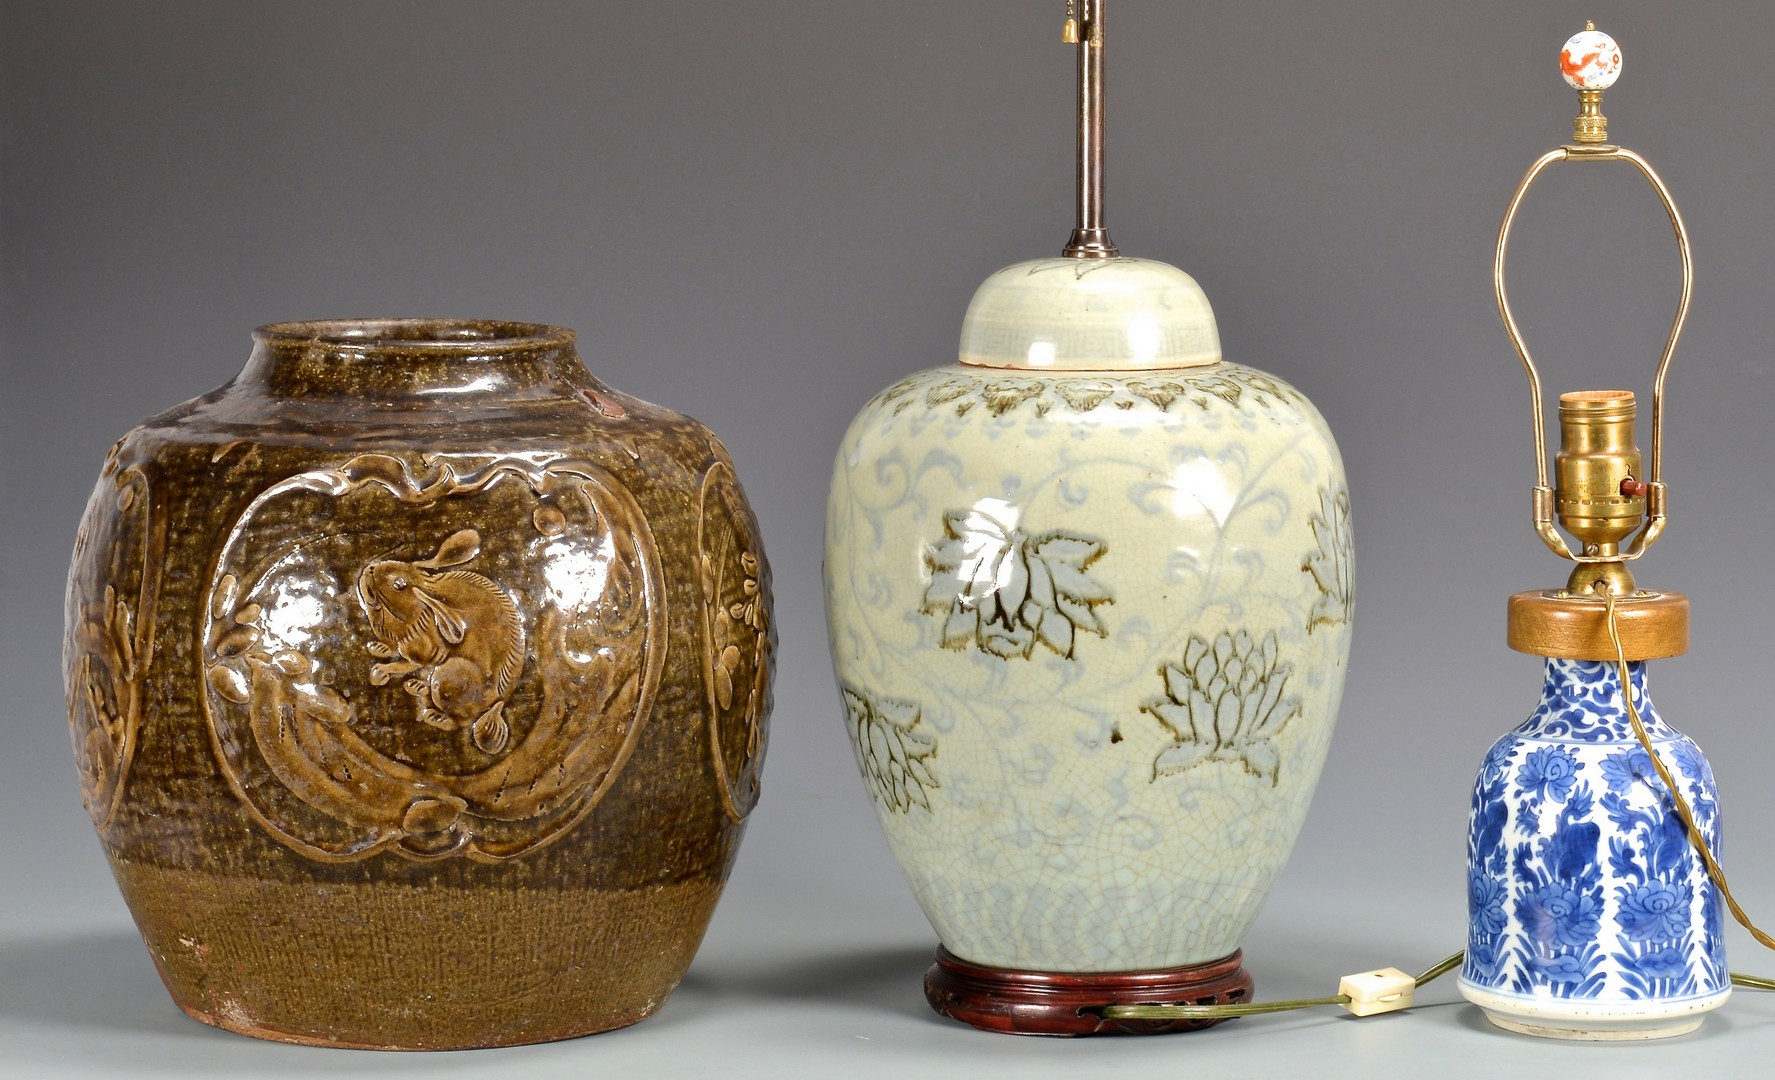 Lot 746: 3 Chinese Porcelain Items, incl. 2 Lamps